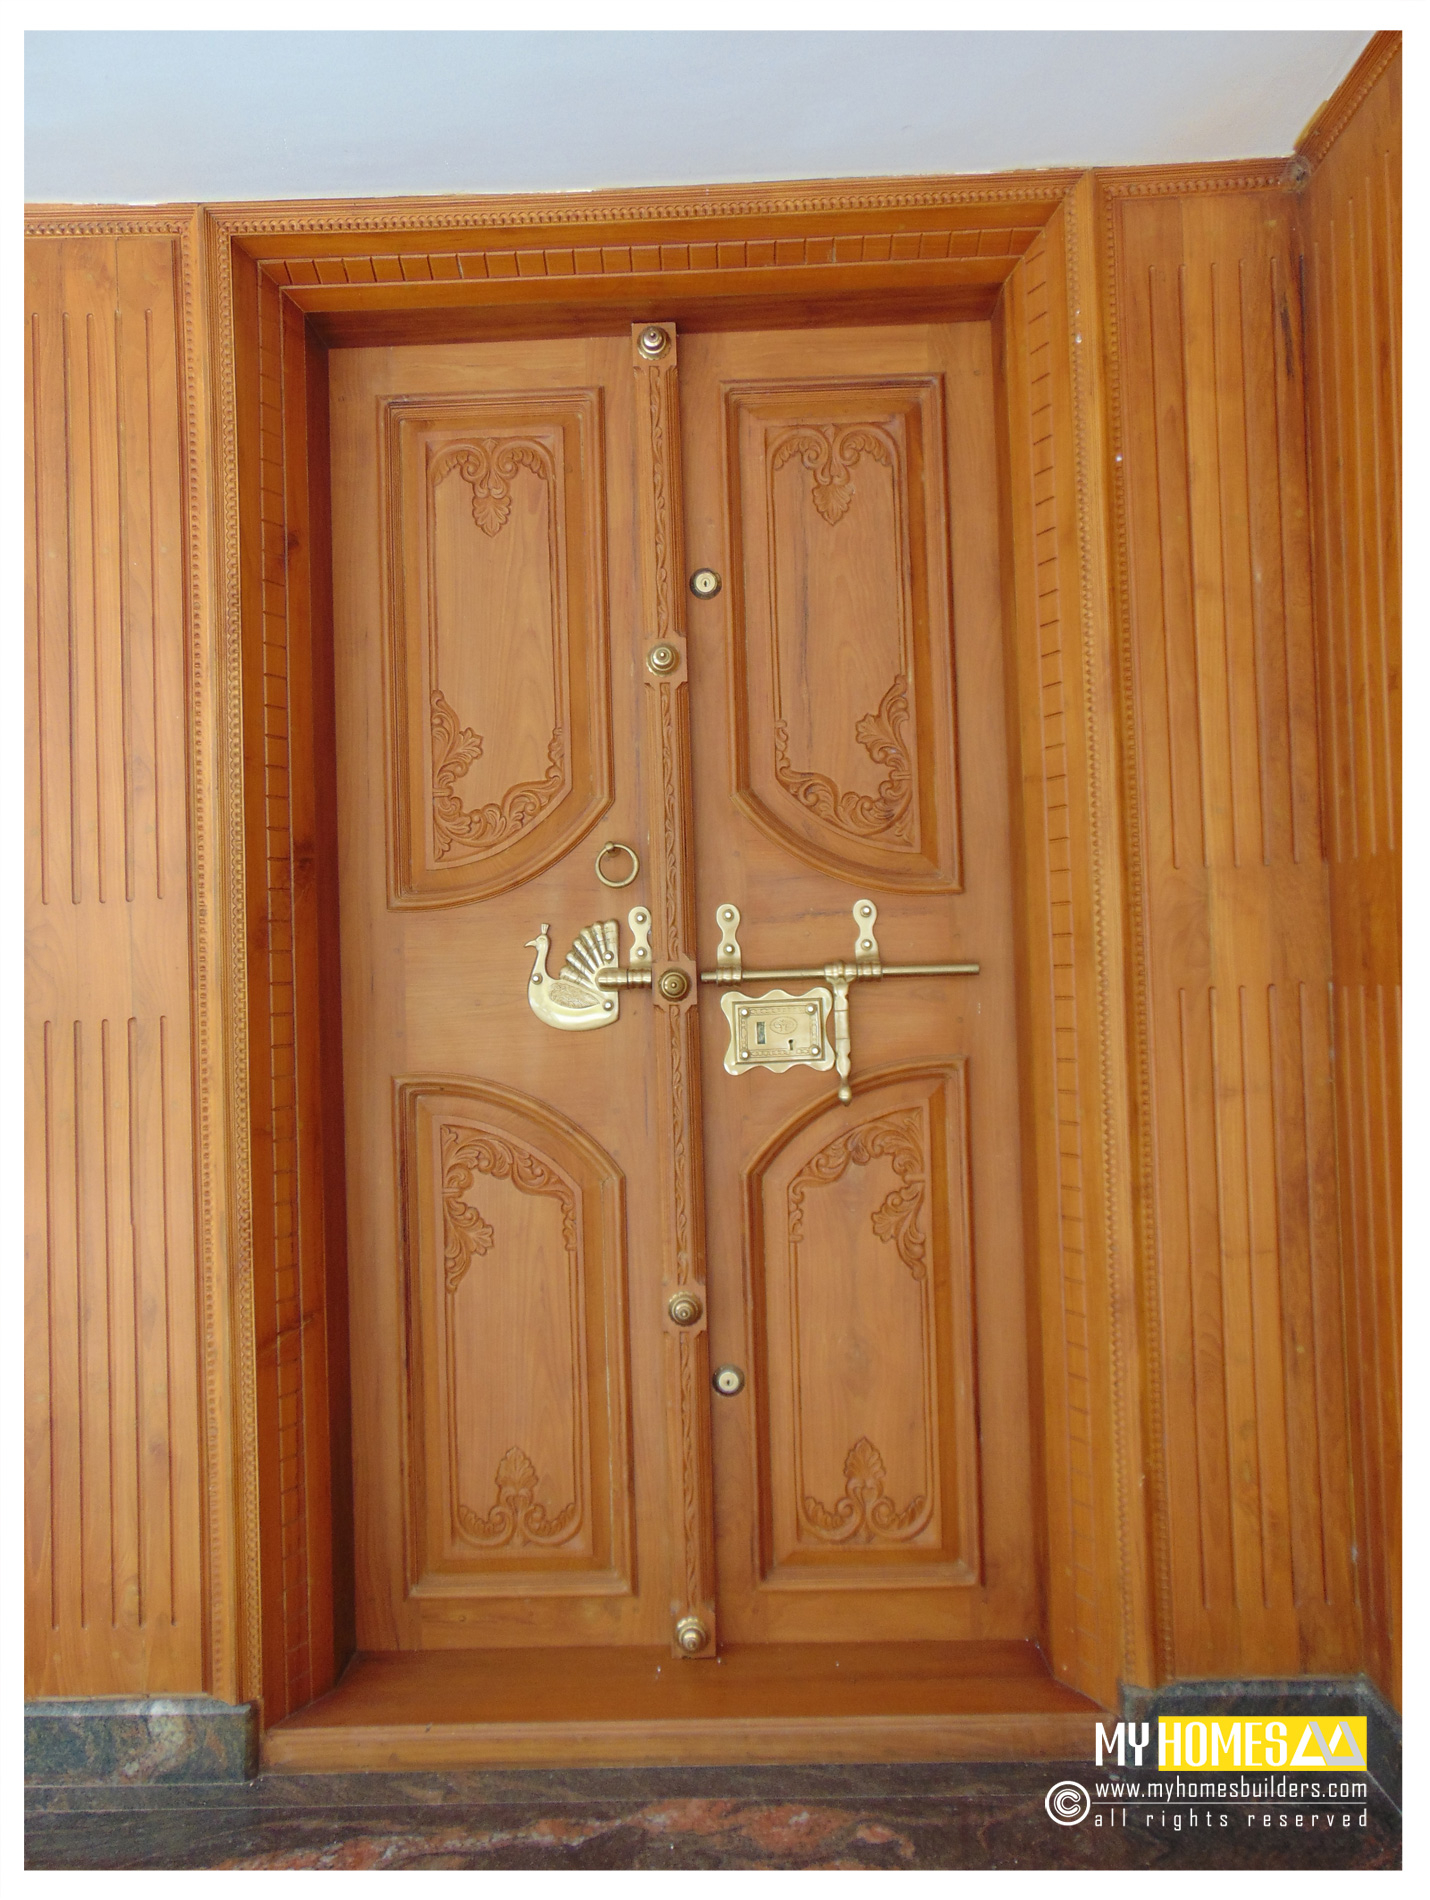 Glamorous Latest Design For Main Door - Flush Doors Ply Timber Wood, Modern regarding Door And Window Design Image